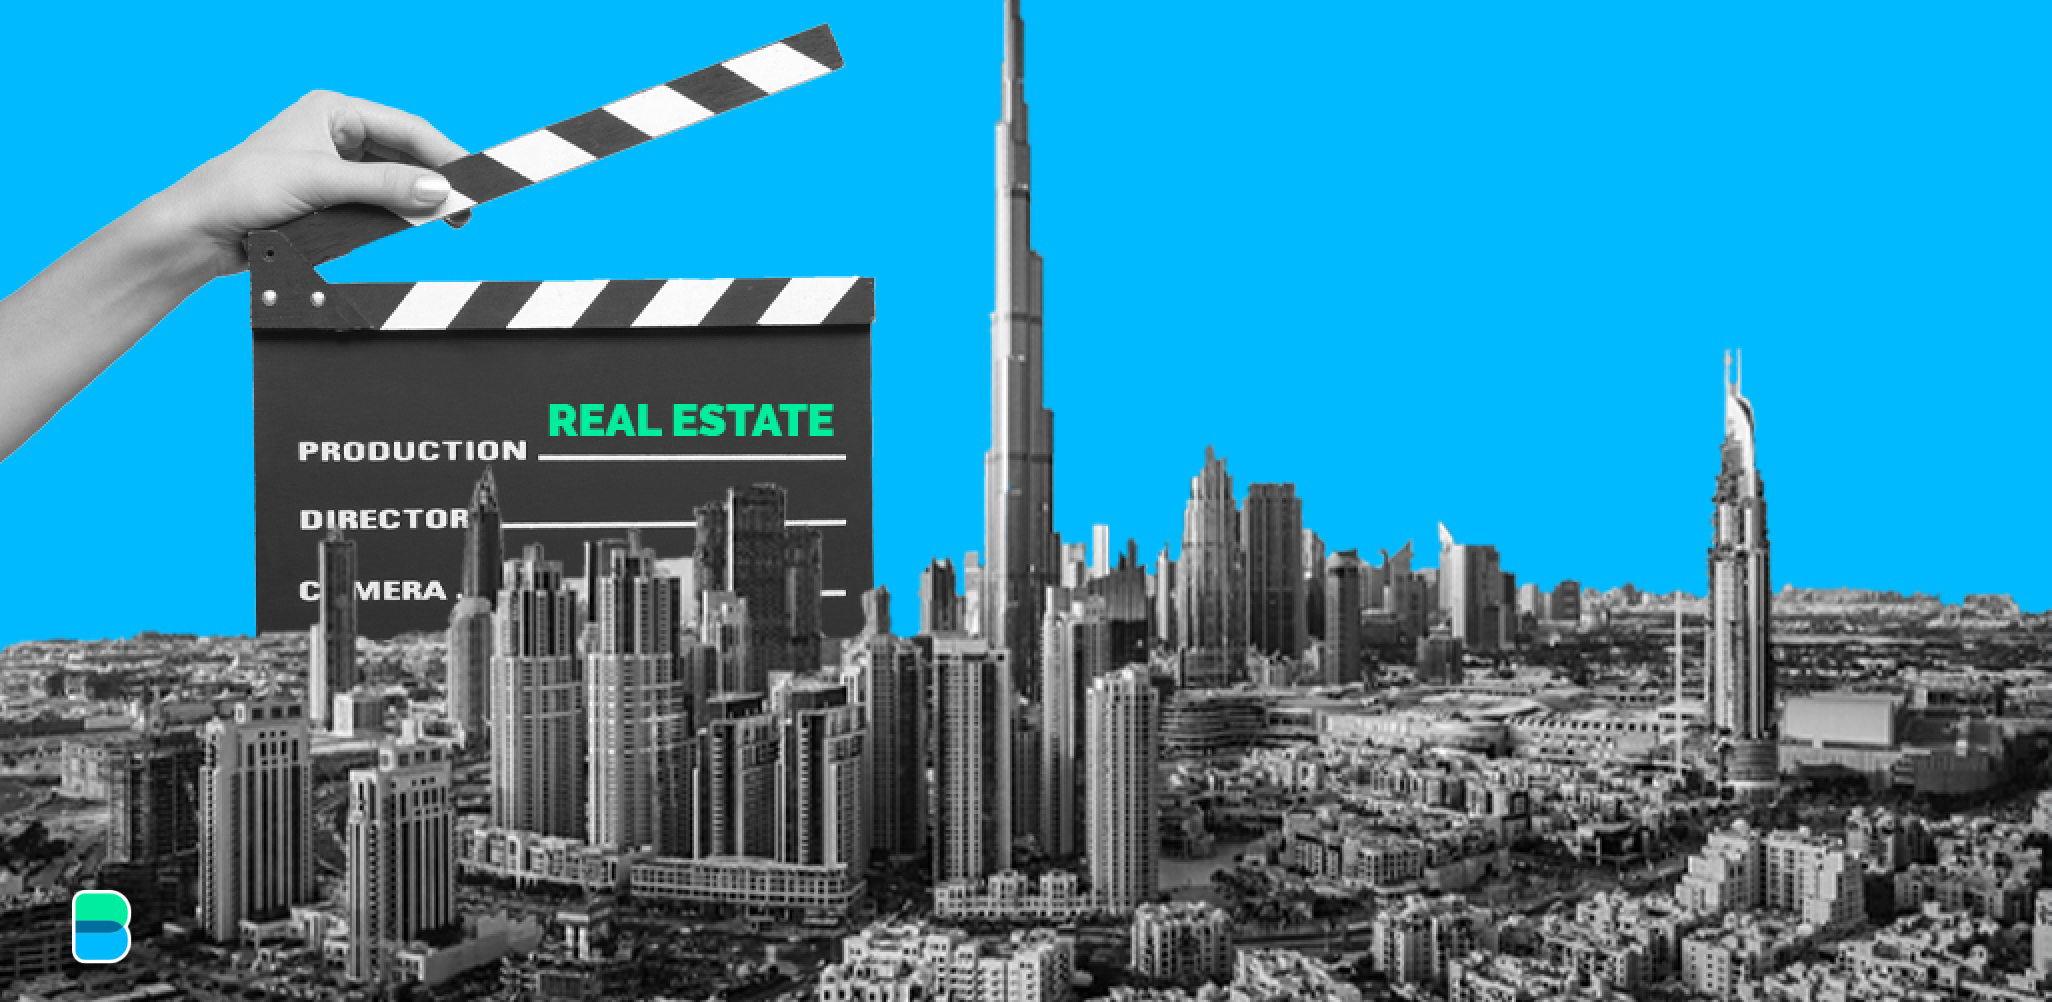 Real Estate is back in action!